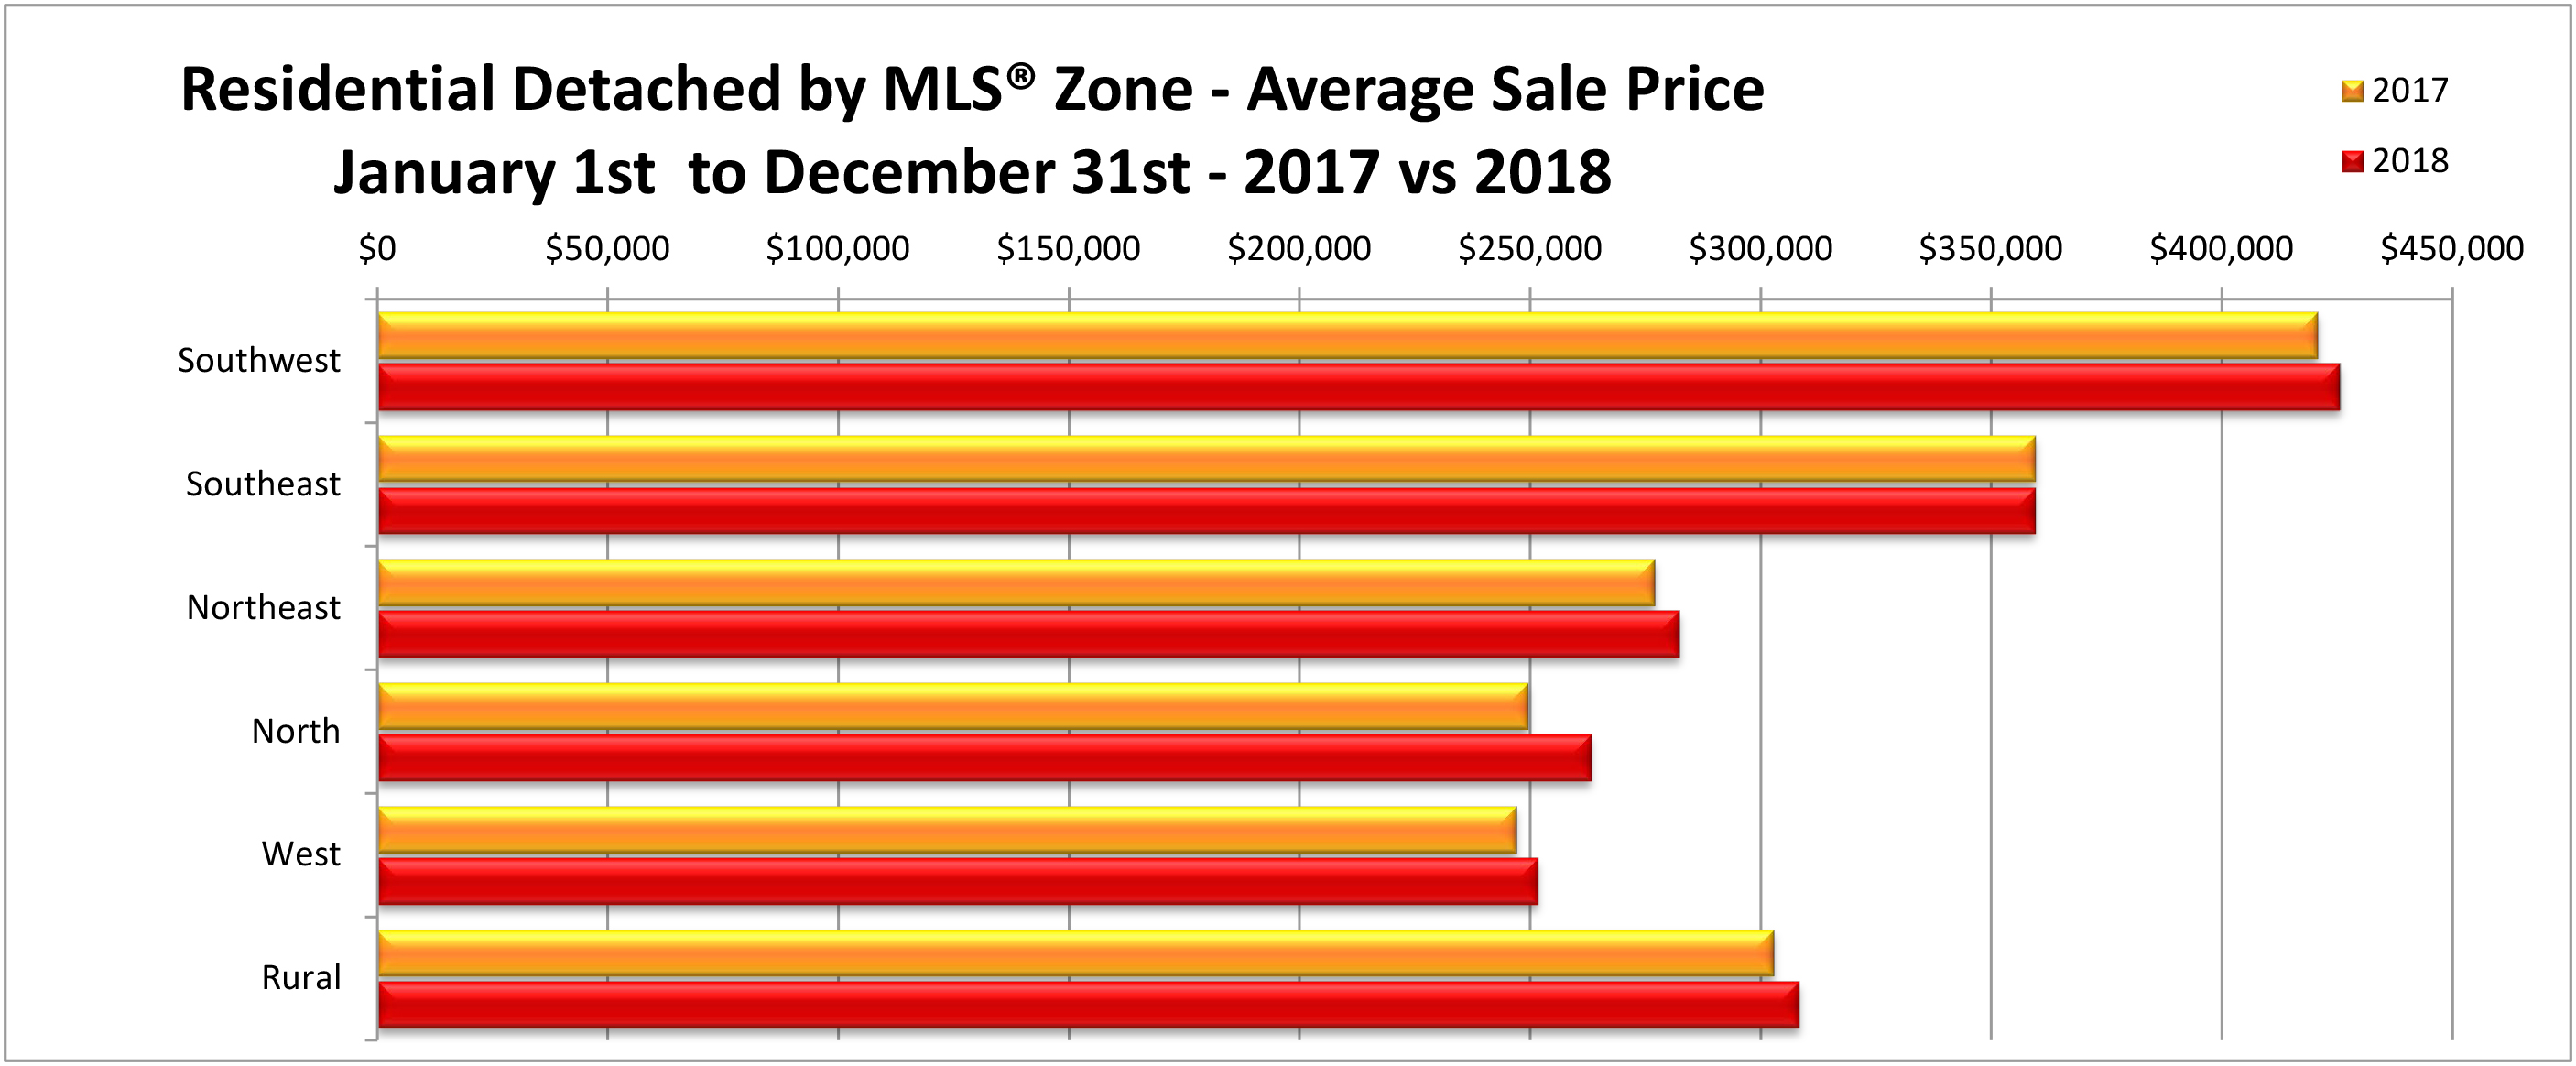 Residential Detached by Zone - Average Price YTD December 2018.jpg (975 KB)